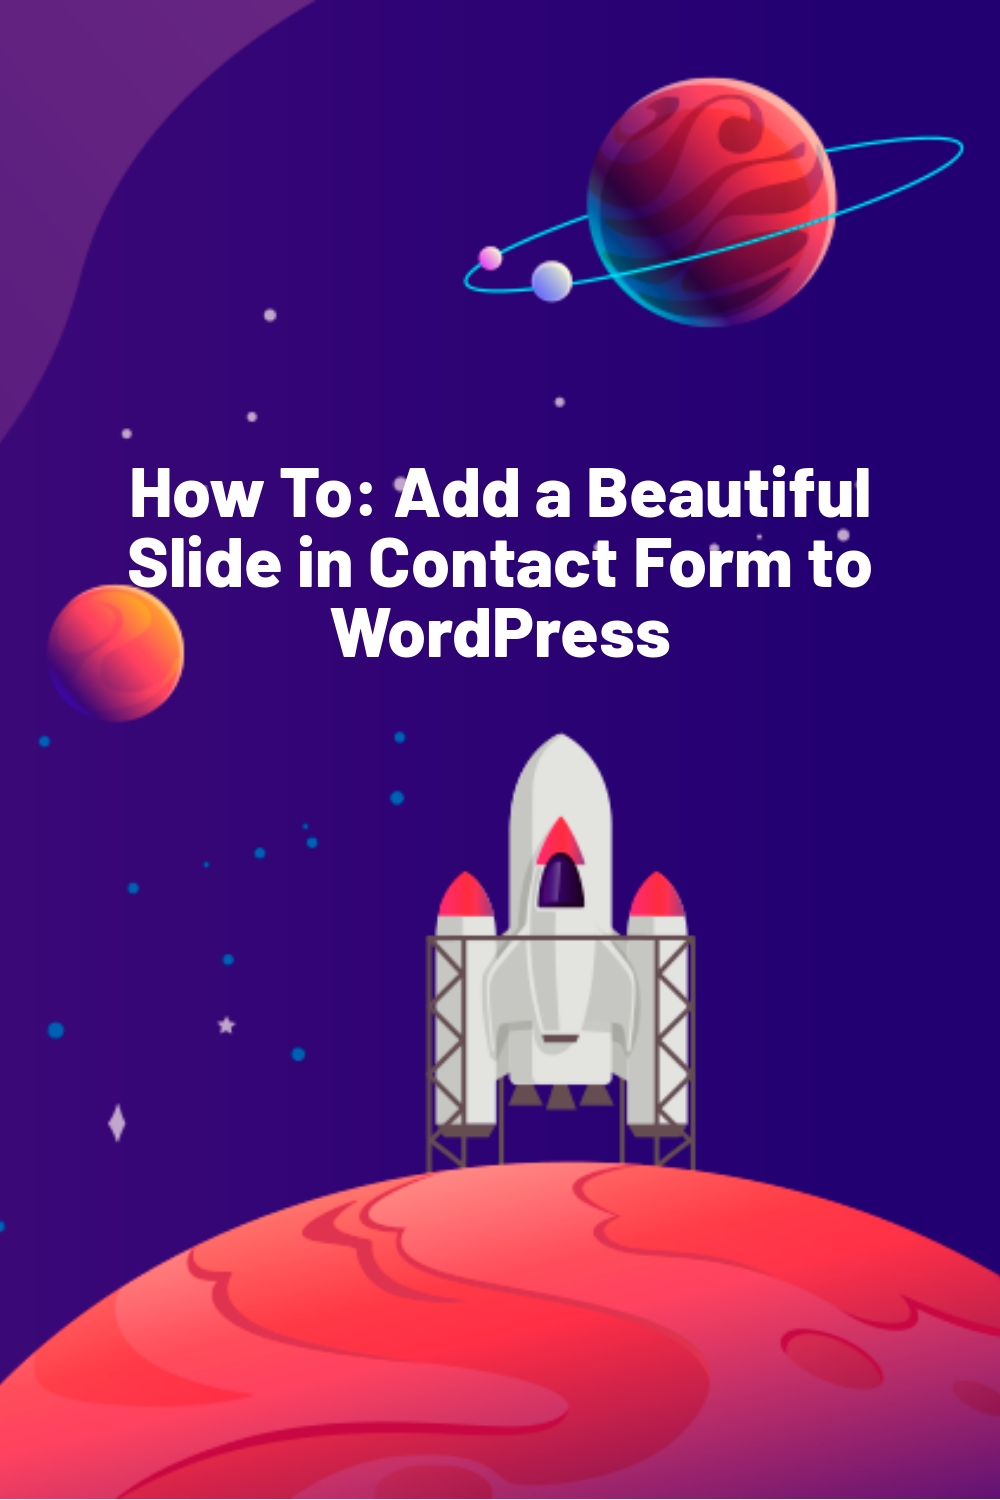 How To: Add a Beautiful Slide in Contact Form to WordPress